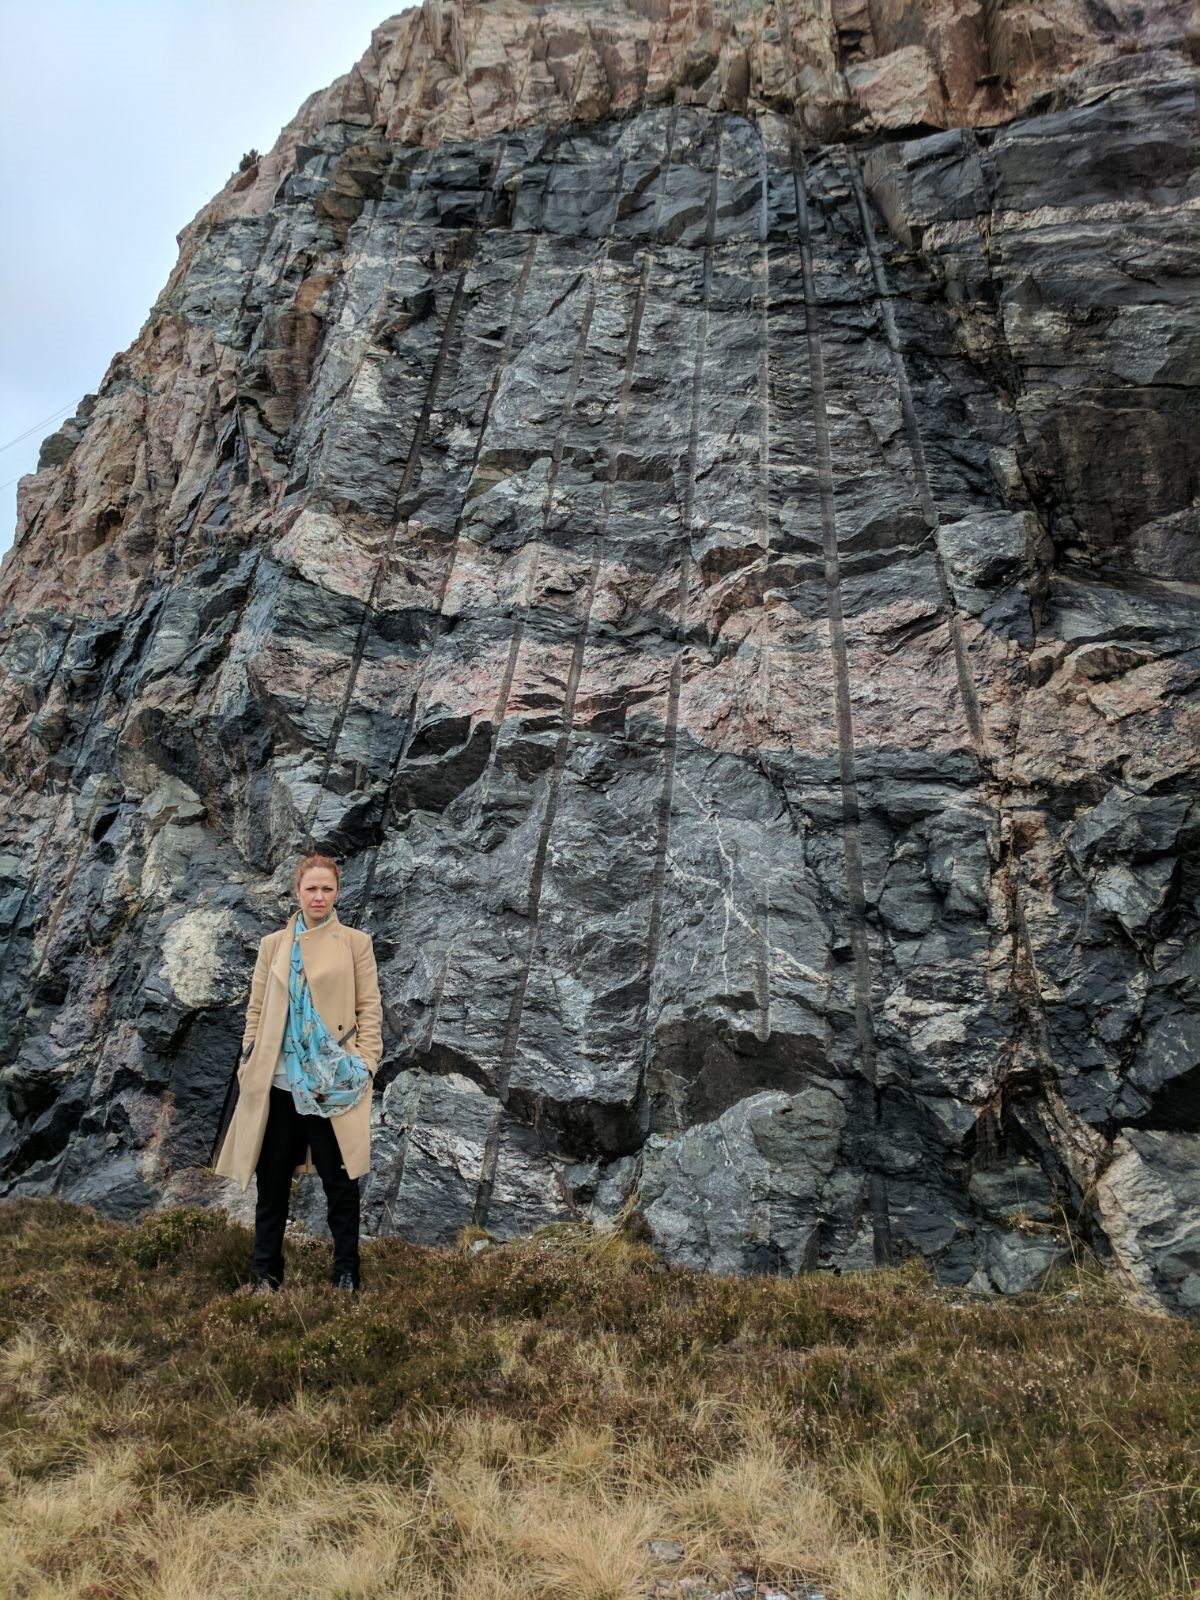 Gail Ross has backed the campaign to save the Geopark